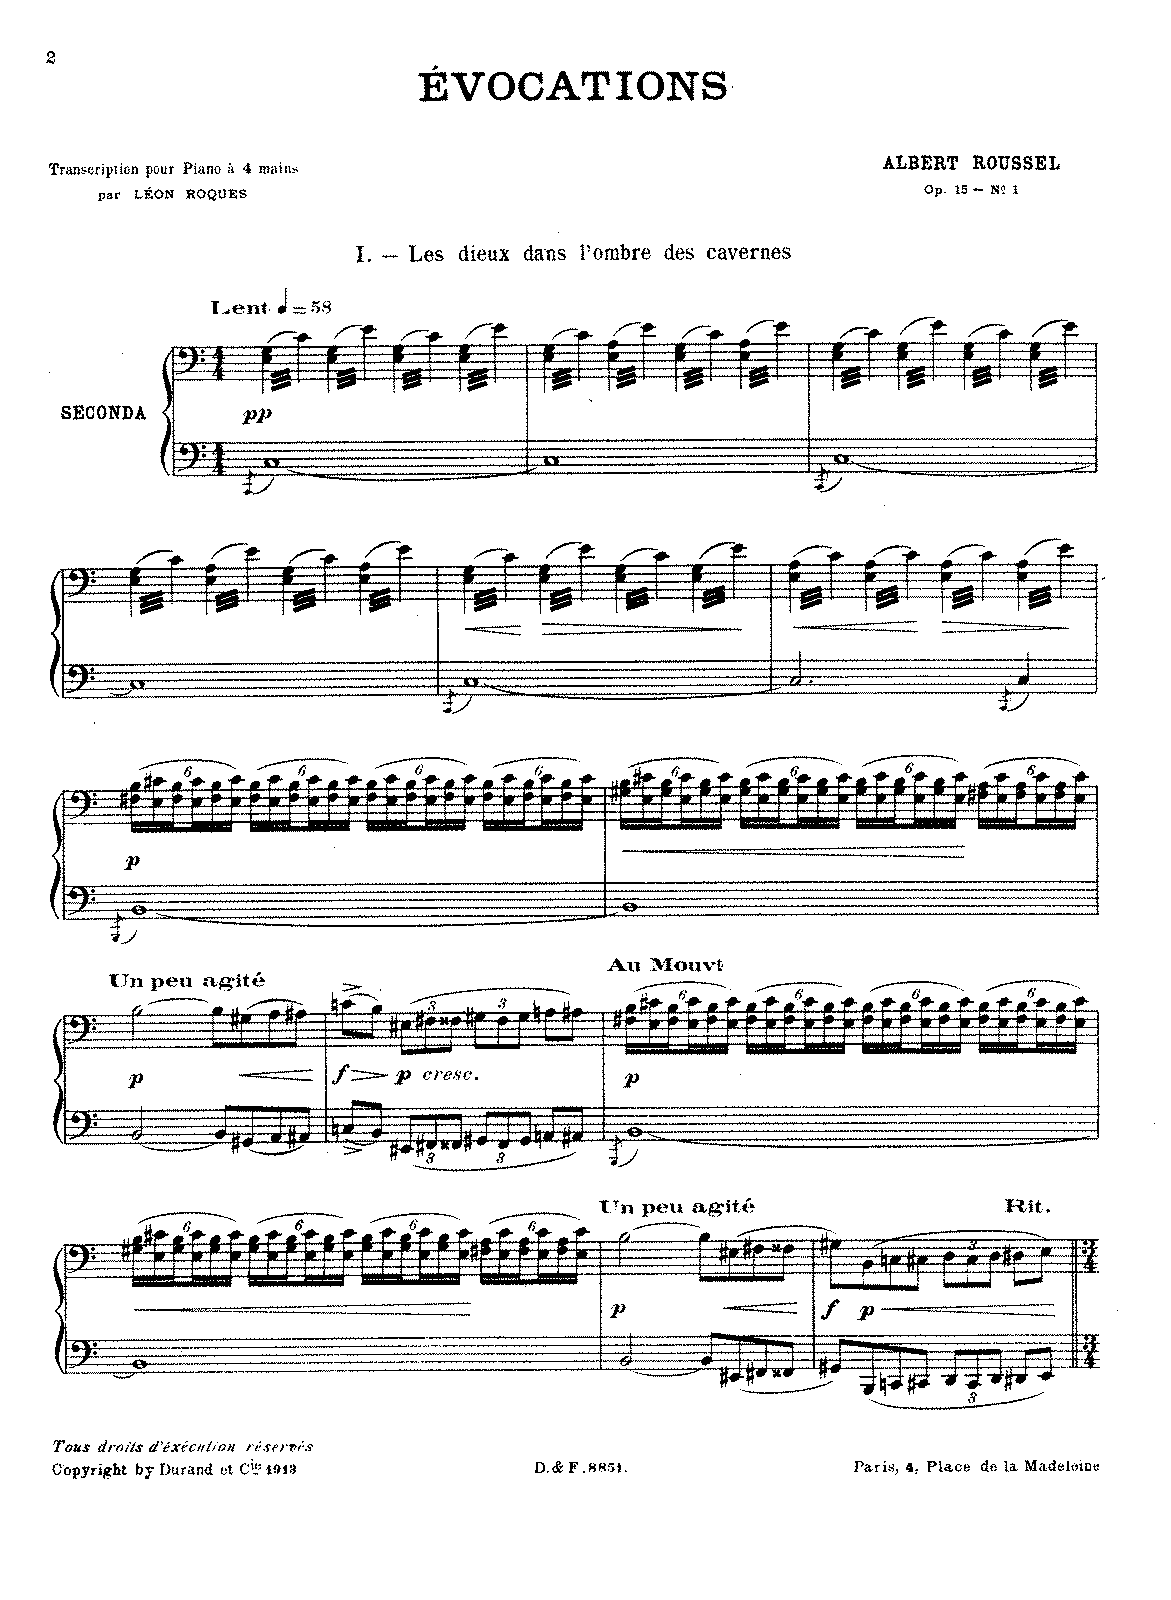 PMLP38755-Roussel - Evocations (trans. Roques - piano 4 hands).pdf